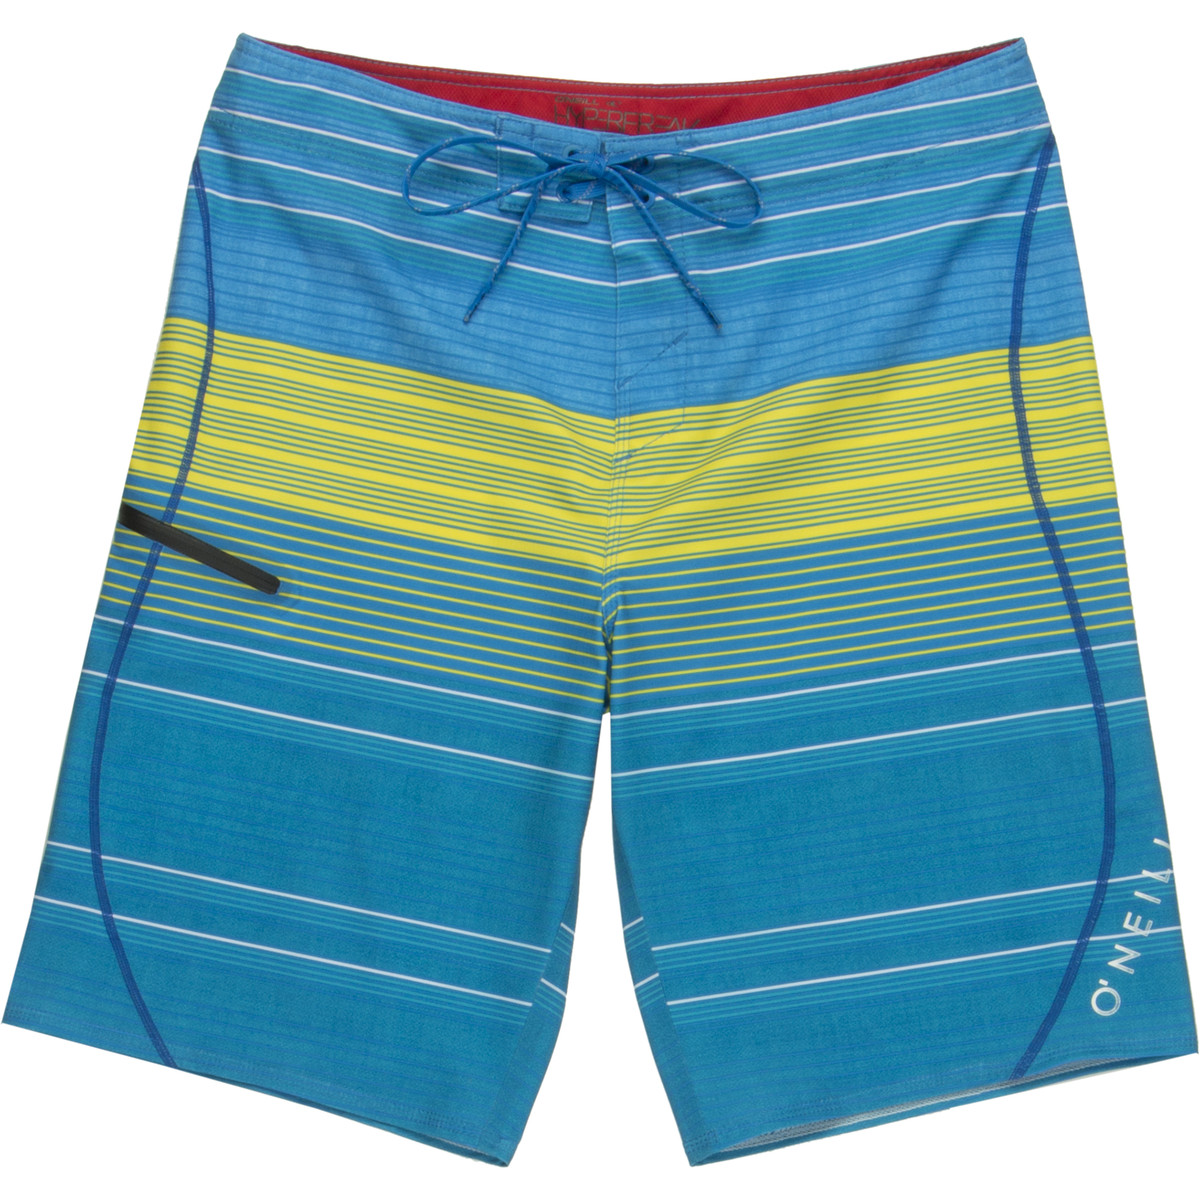 O'Neill Freak Board Short